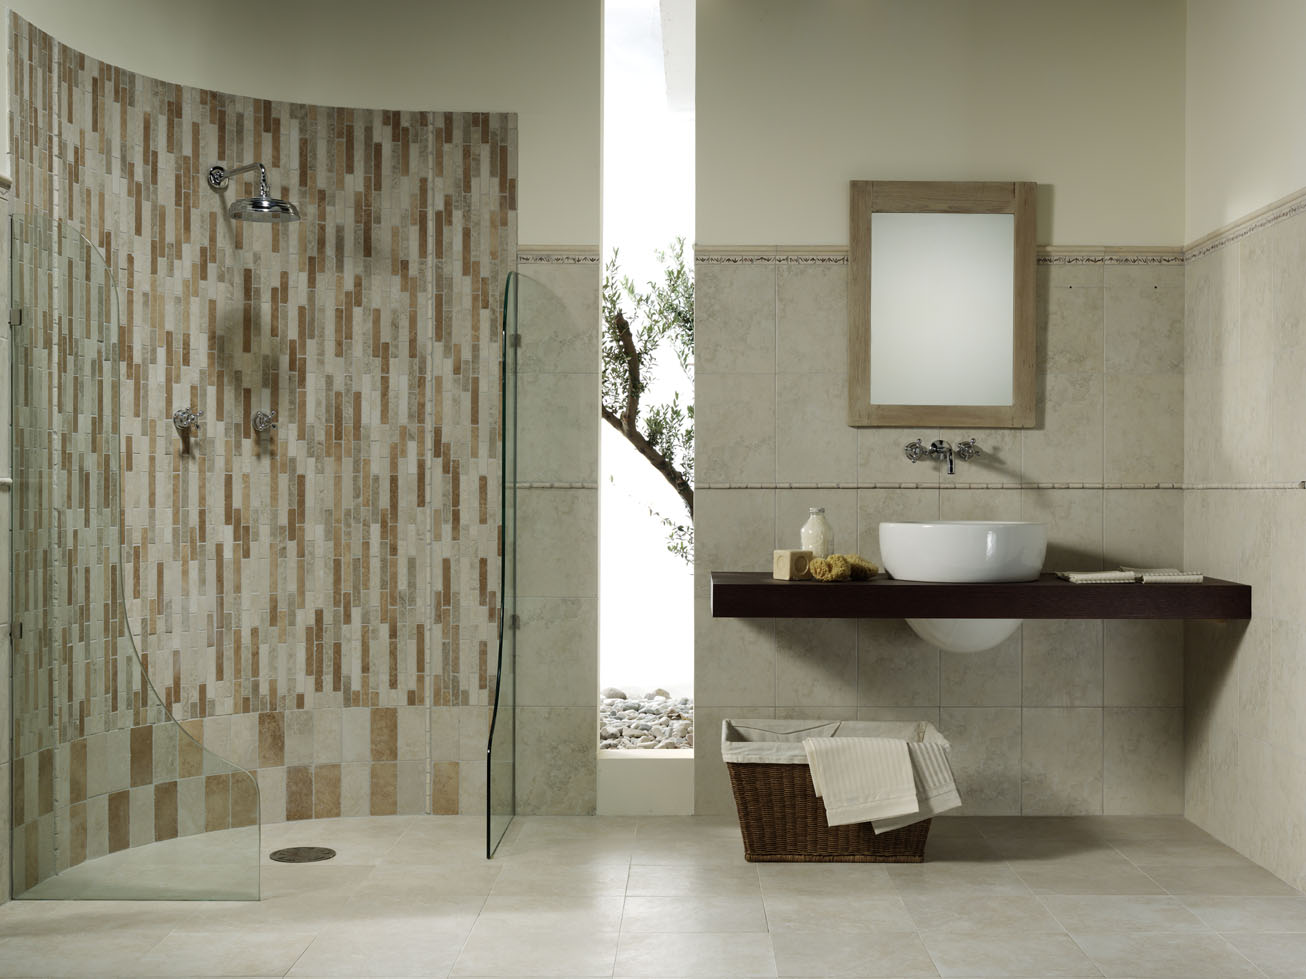 How to maintain porcelain ceramic tile bathrooms dailygadgetfo Image collections